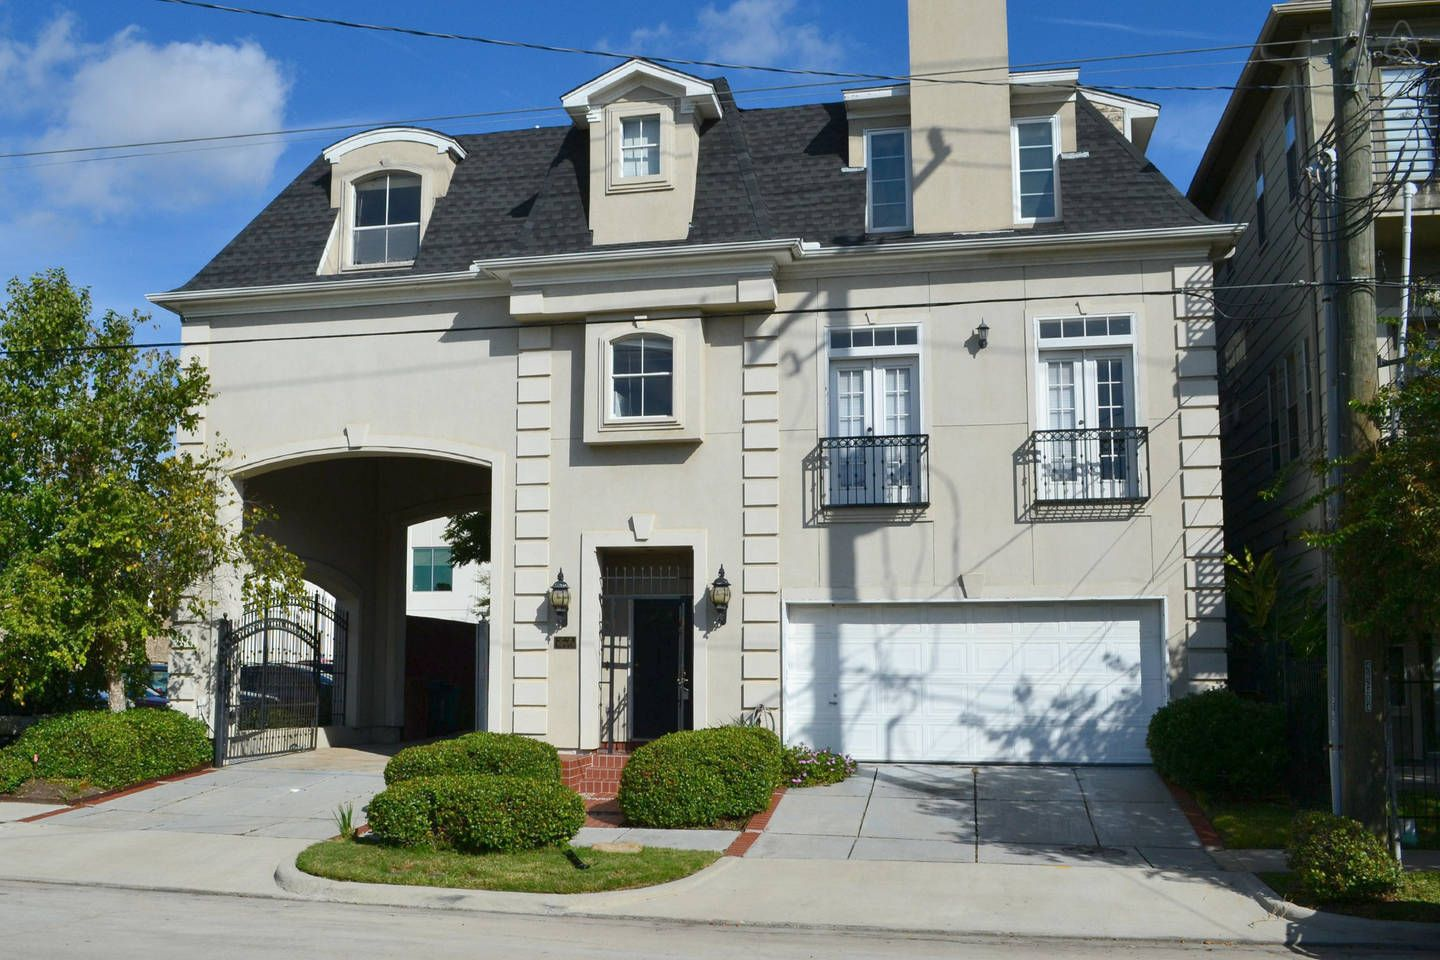 2 Bedroom Montrose Townhouse vacation rental in Houston